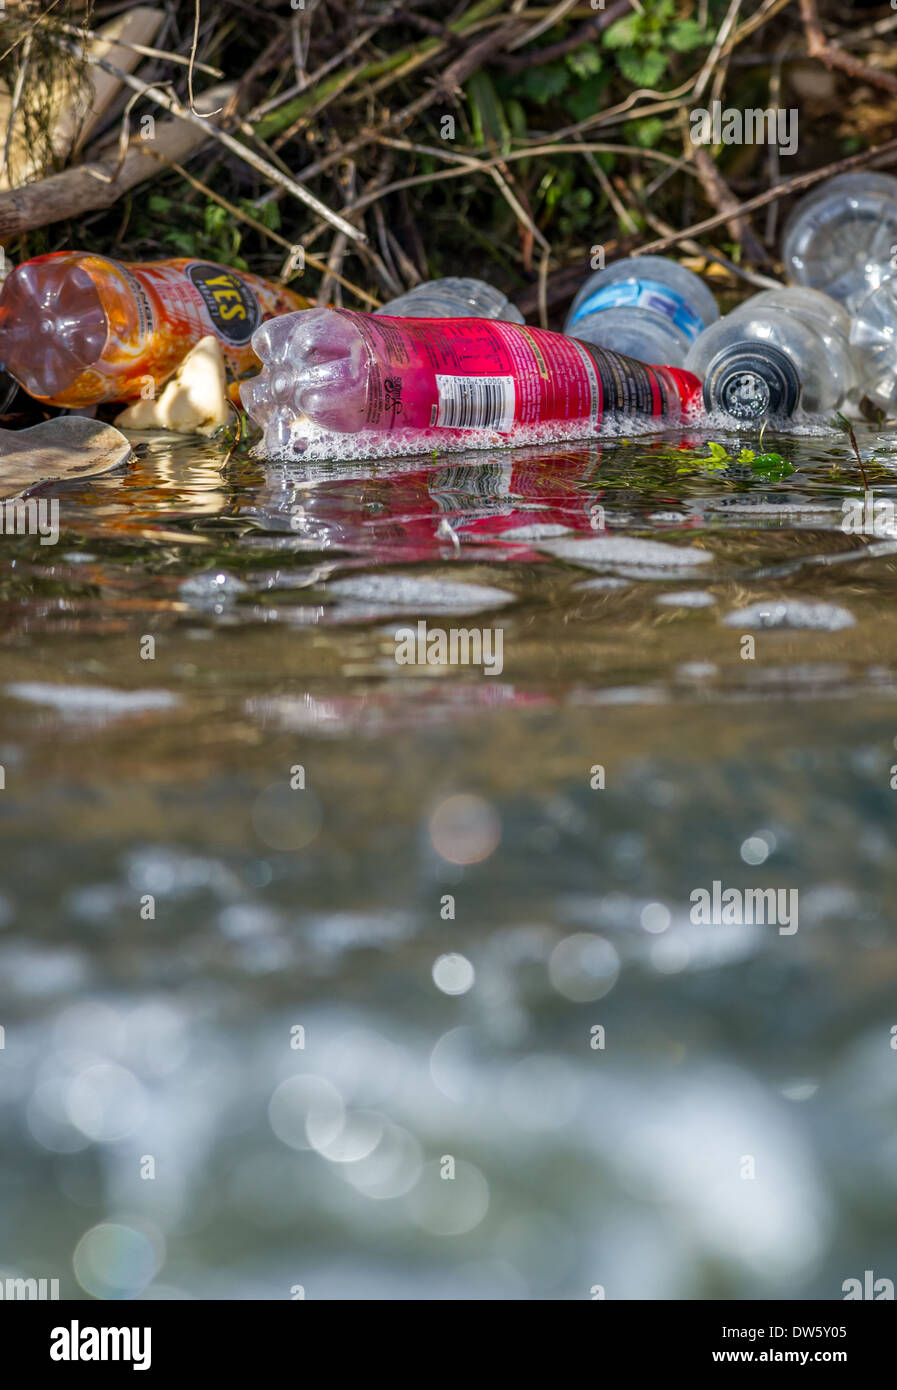 Discarded plastic bottles pollute the banks of a river. - Stock Image